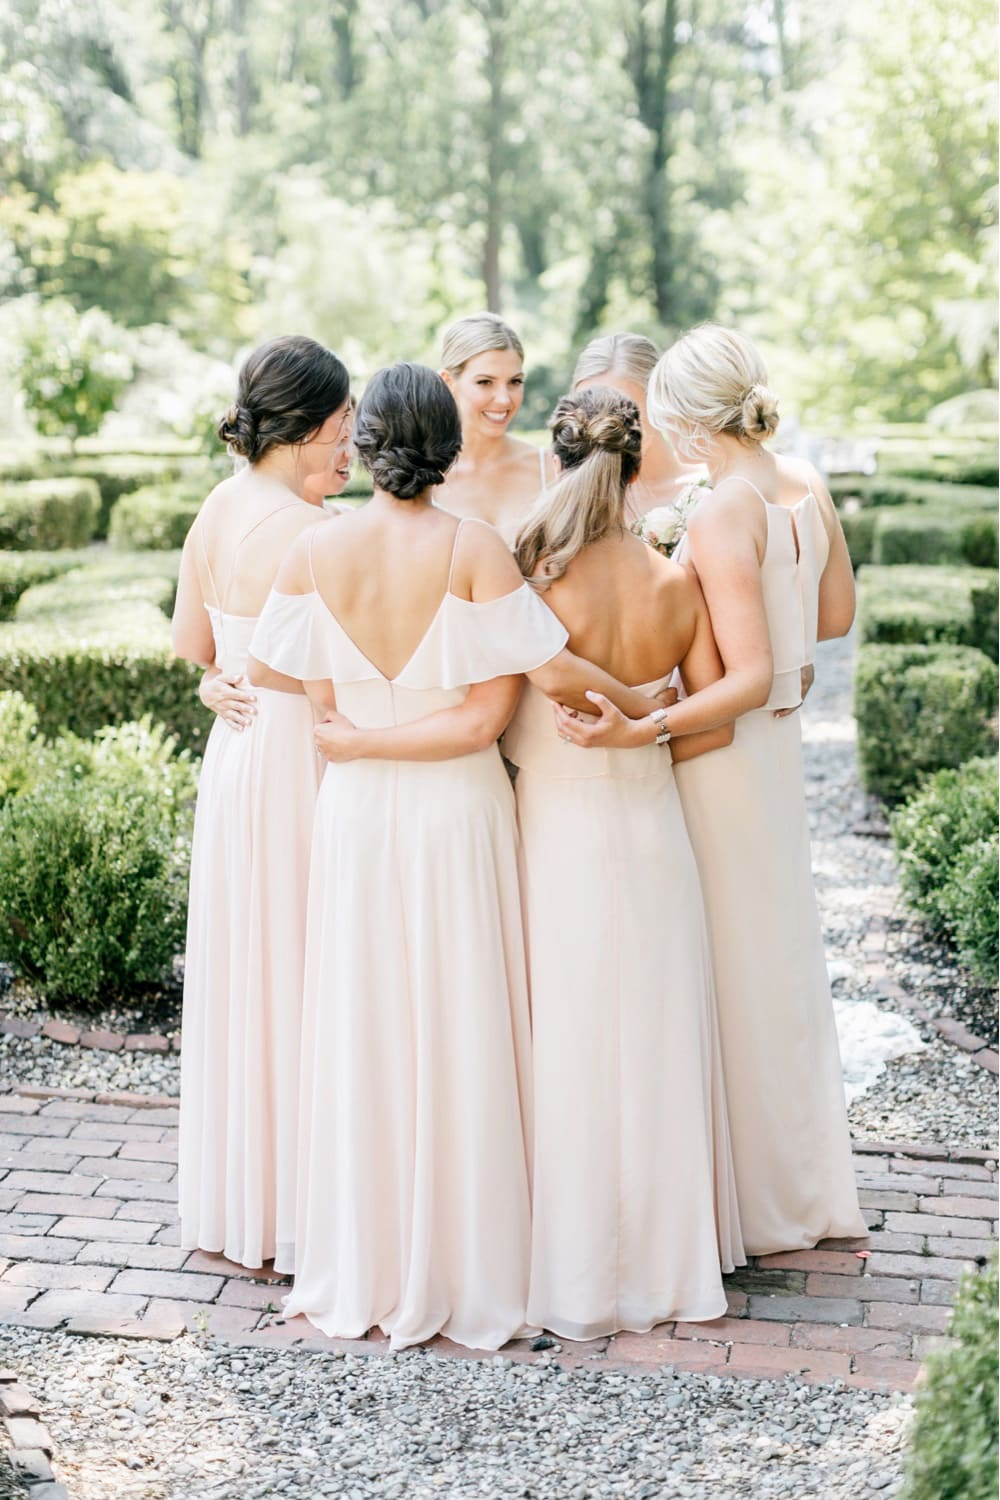 10 Fun Things to Do on Your Wedding Morning with Your Bridesmaids | Photography: Emily Wren Photography